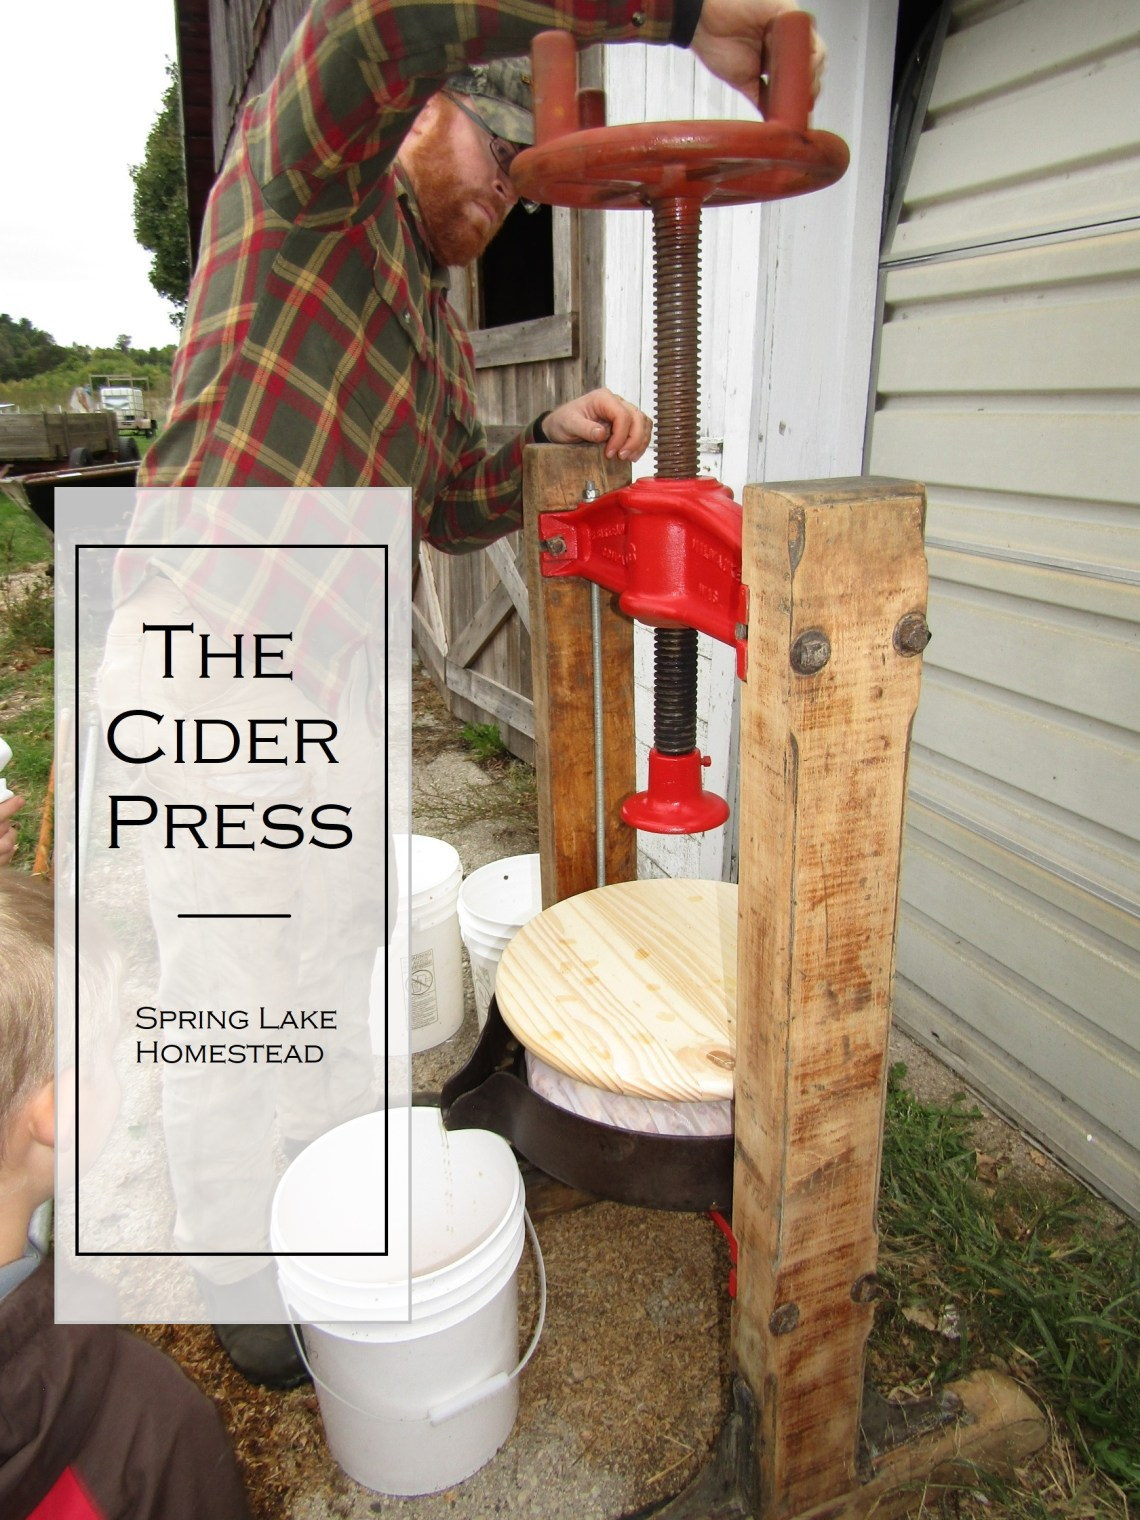 The Cider Press